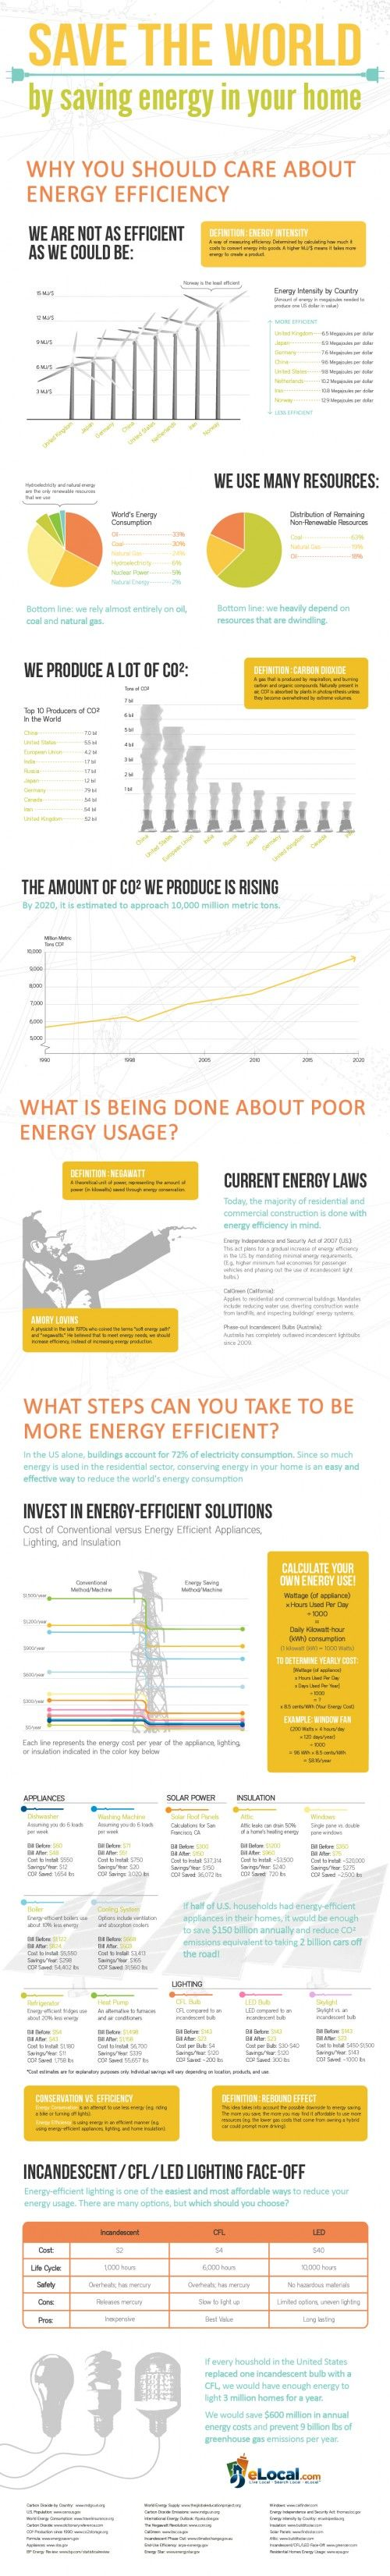 [Infographie - infographic] Save the World - by saving energy in your home